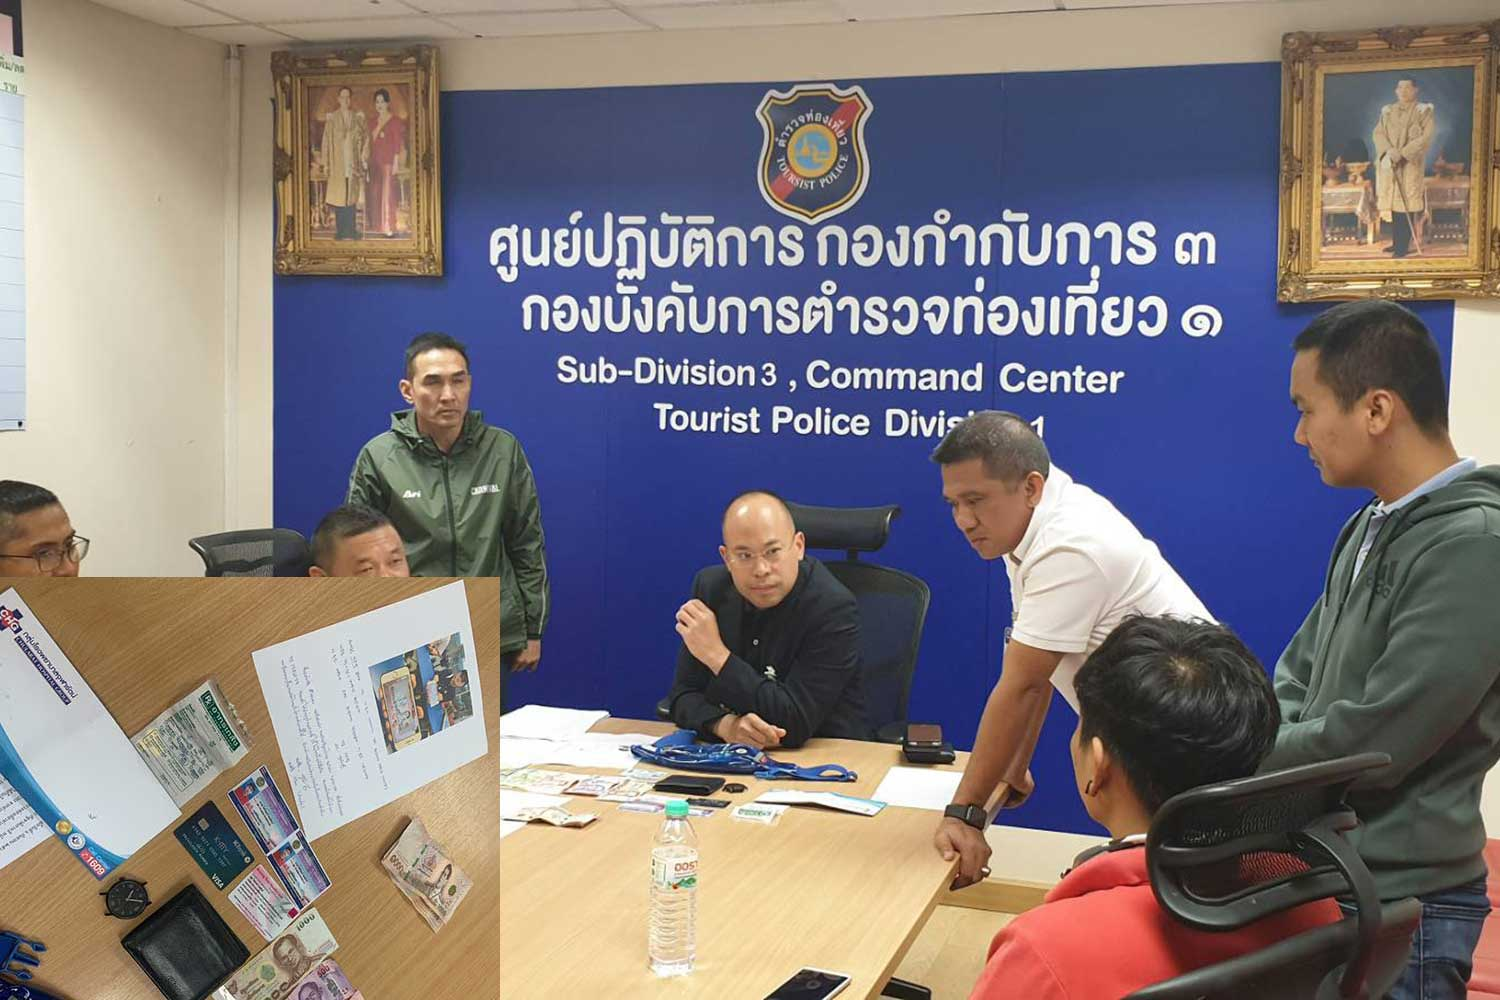 Police interrogate baggage handler Phairin Pholkhan (red T-shirt), who is accused of stealing cash from the luggage of a Korean woman at Suvarnabhumi airport. (Photo by Sutthiwit Chayutworakan)